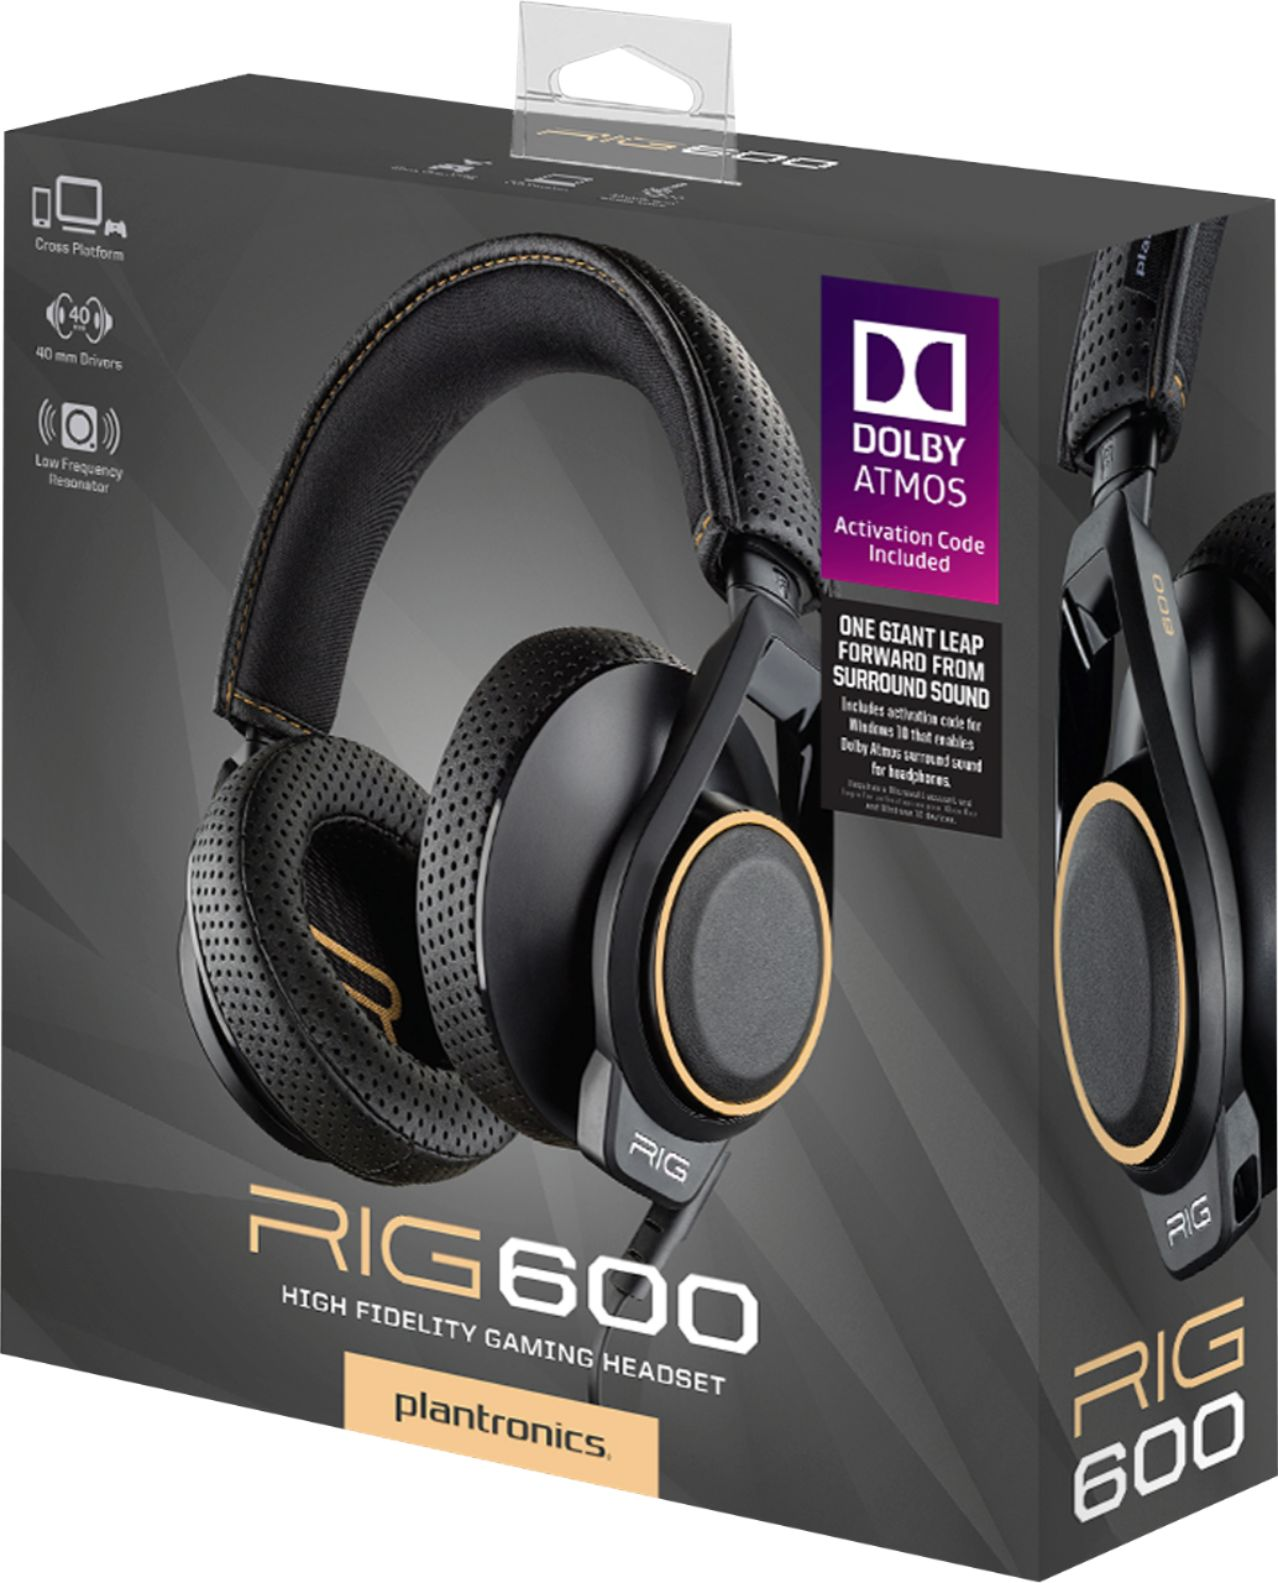 Plantronics RIG 600 Wired Dolby Atmos Gaming Headset for PC. PS4. Xbox One Black 210261-01 - Best Buy